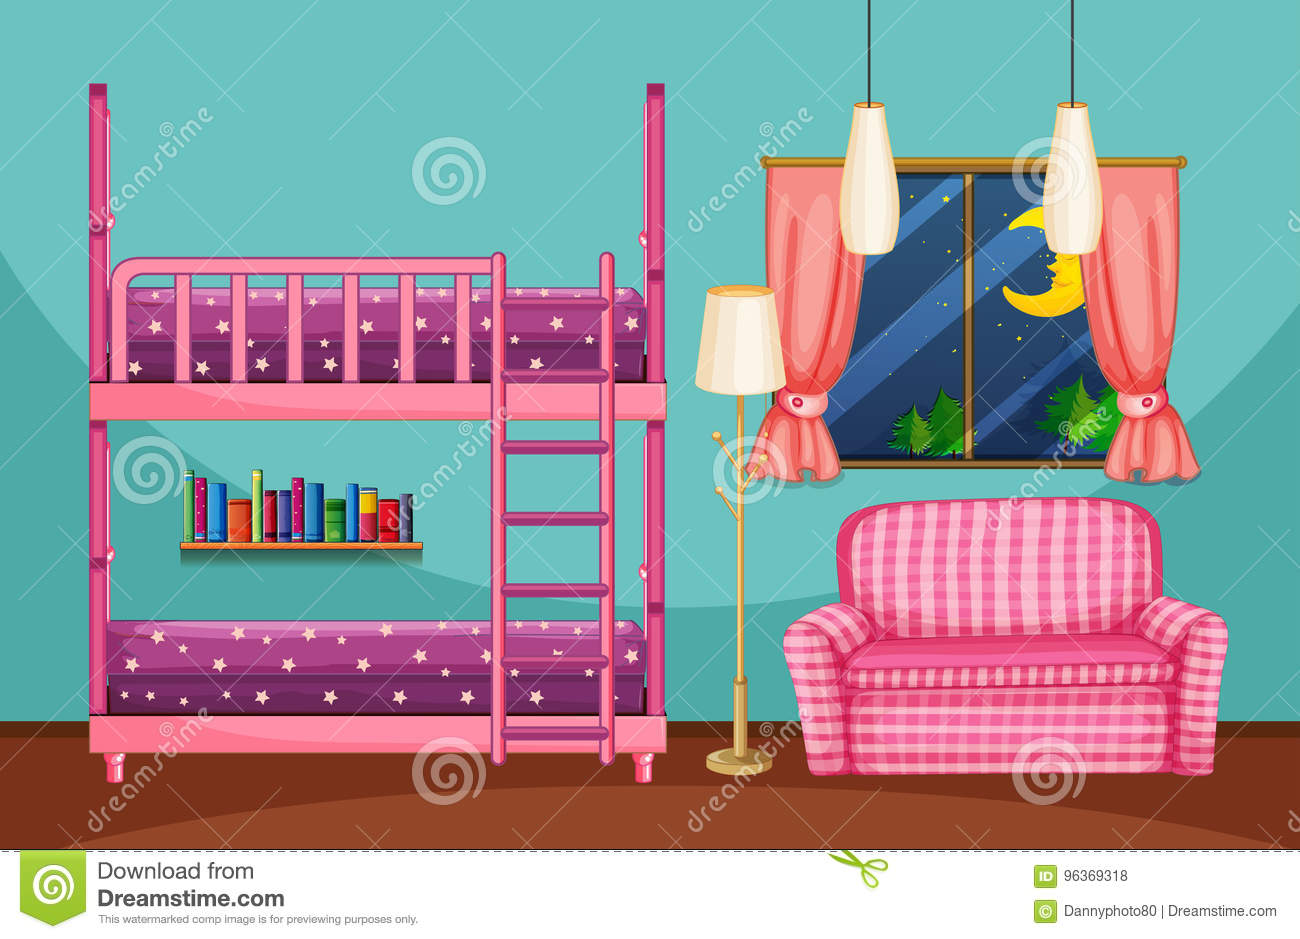 Picture of: Bedroom With Bunkbed And Pink Sofa Stock Vector Illustration Of Drawing Decoration 96369318